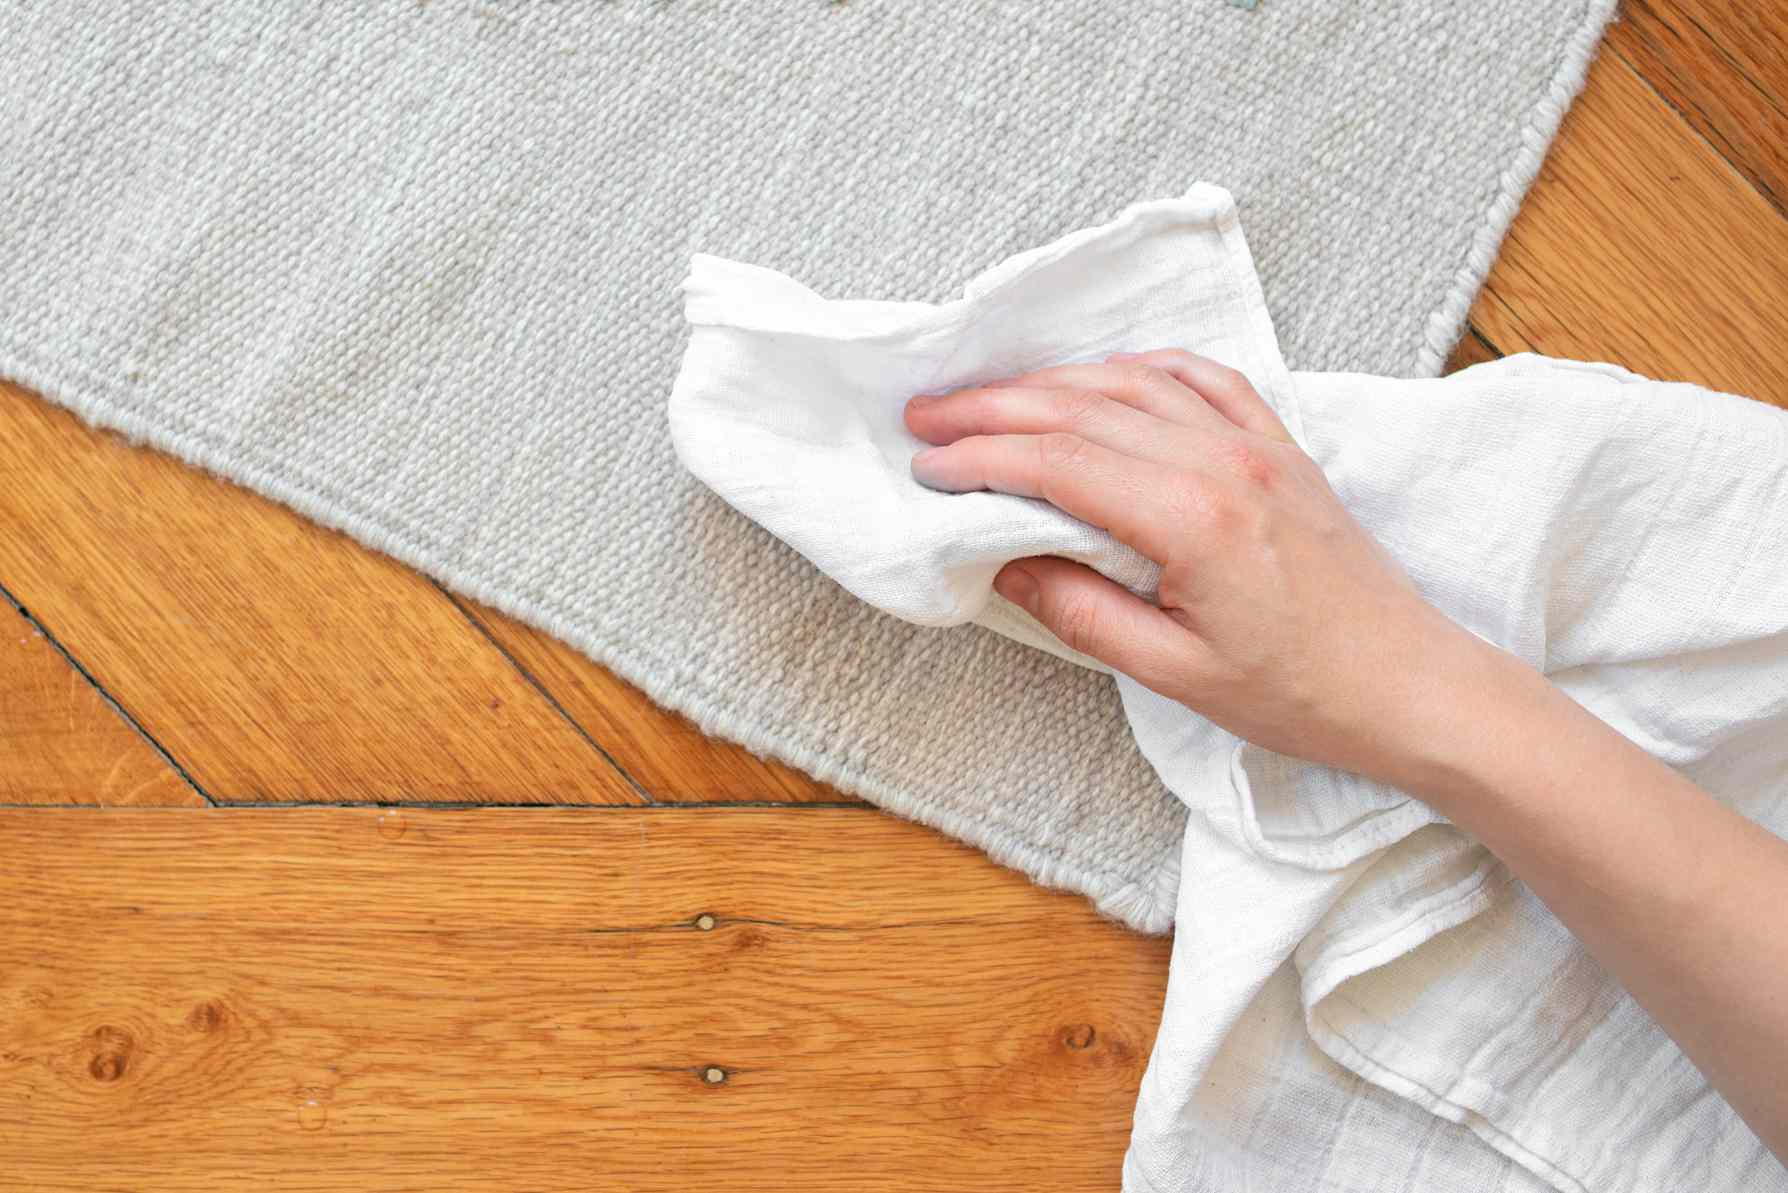 person blotting a rug with a clean cloth